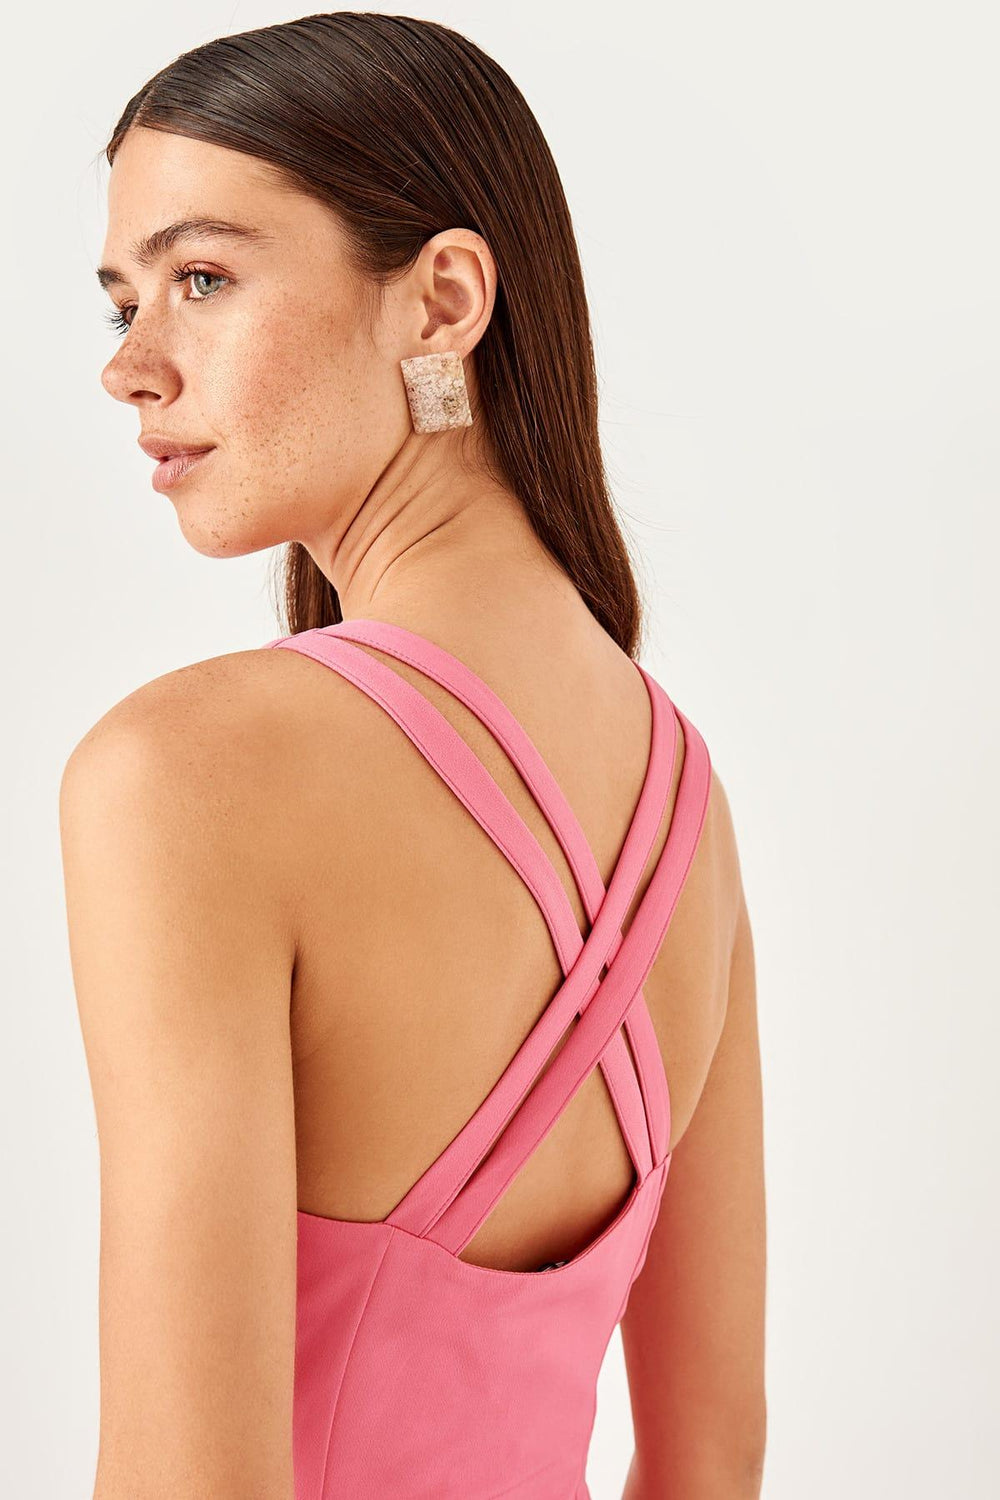 Pink Cross Halter Dress - Top Maxy